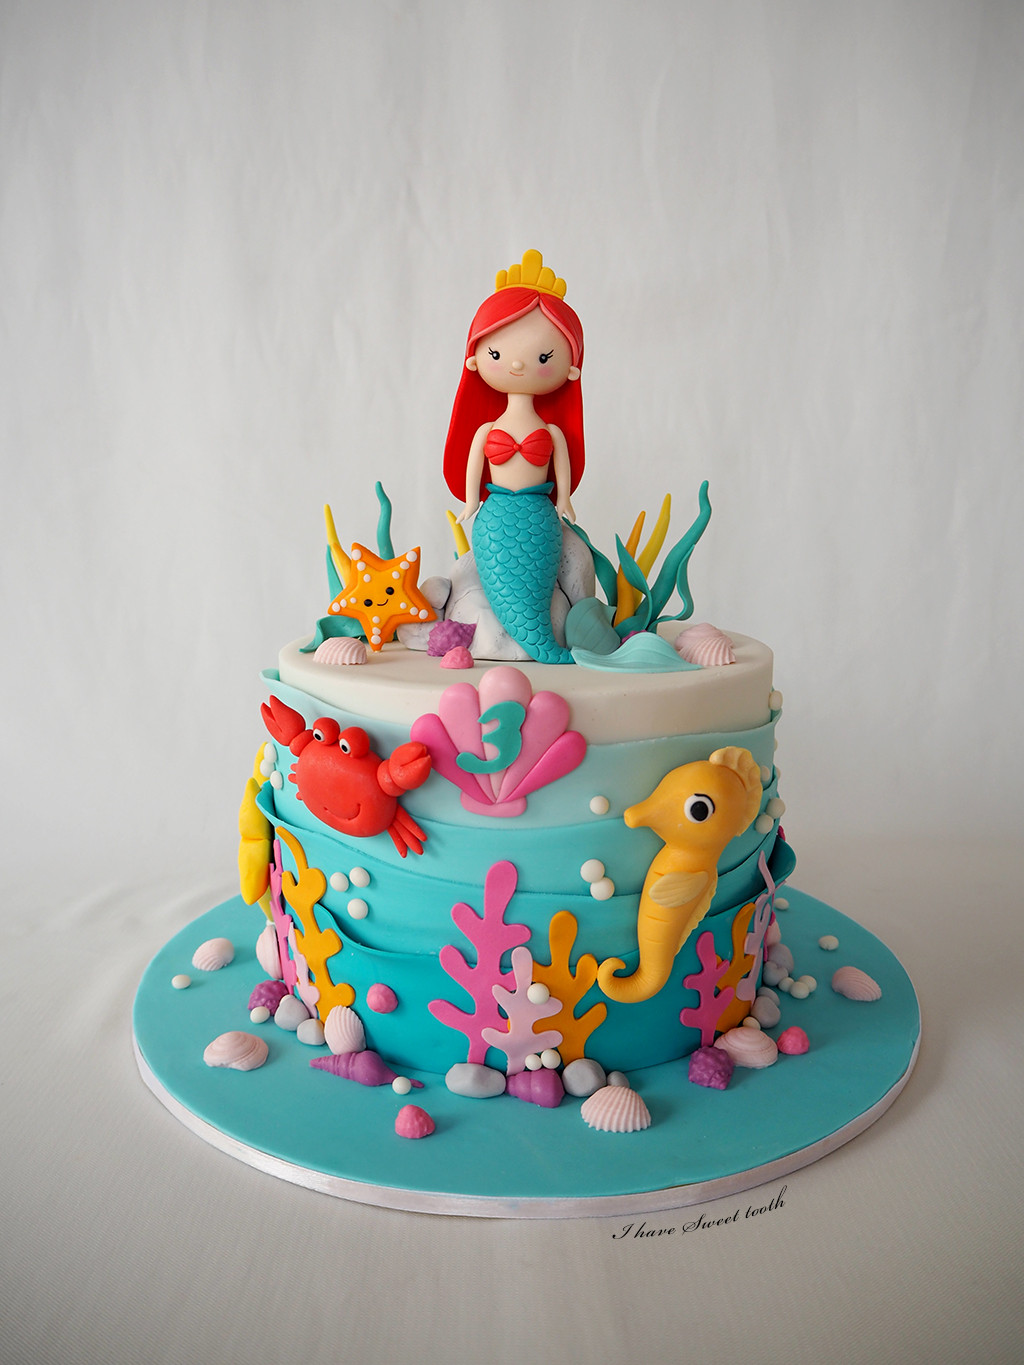 I Have Sweet Tooth: The Little Mermaid